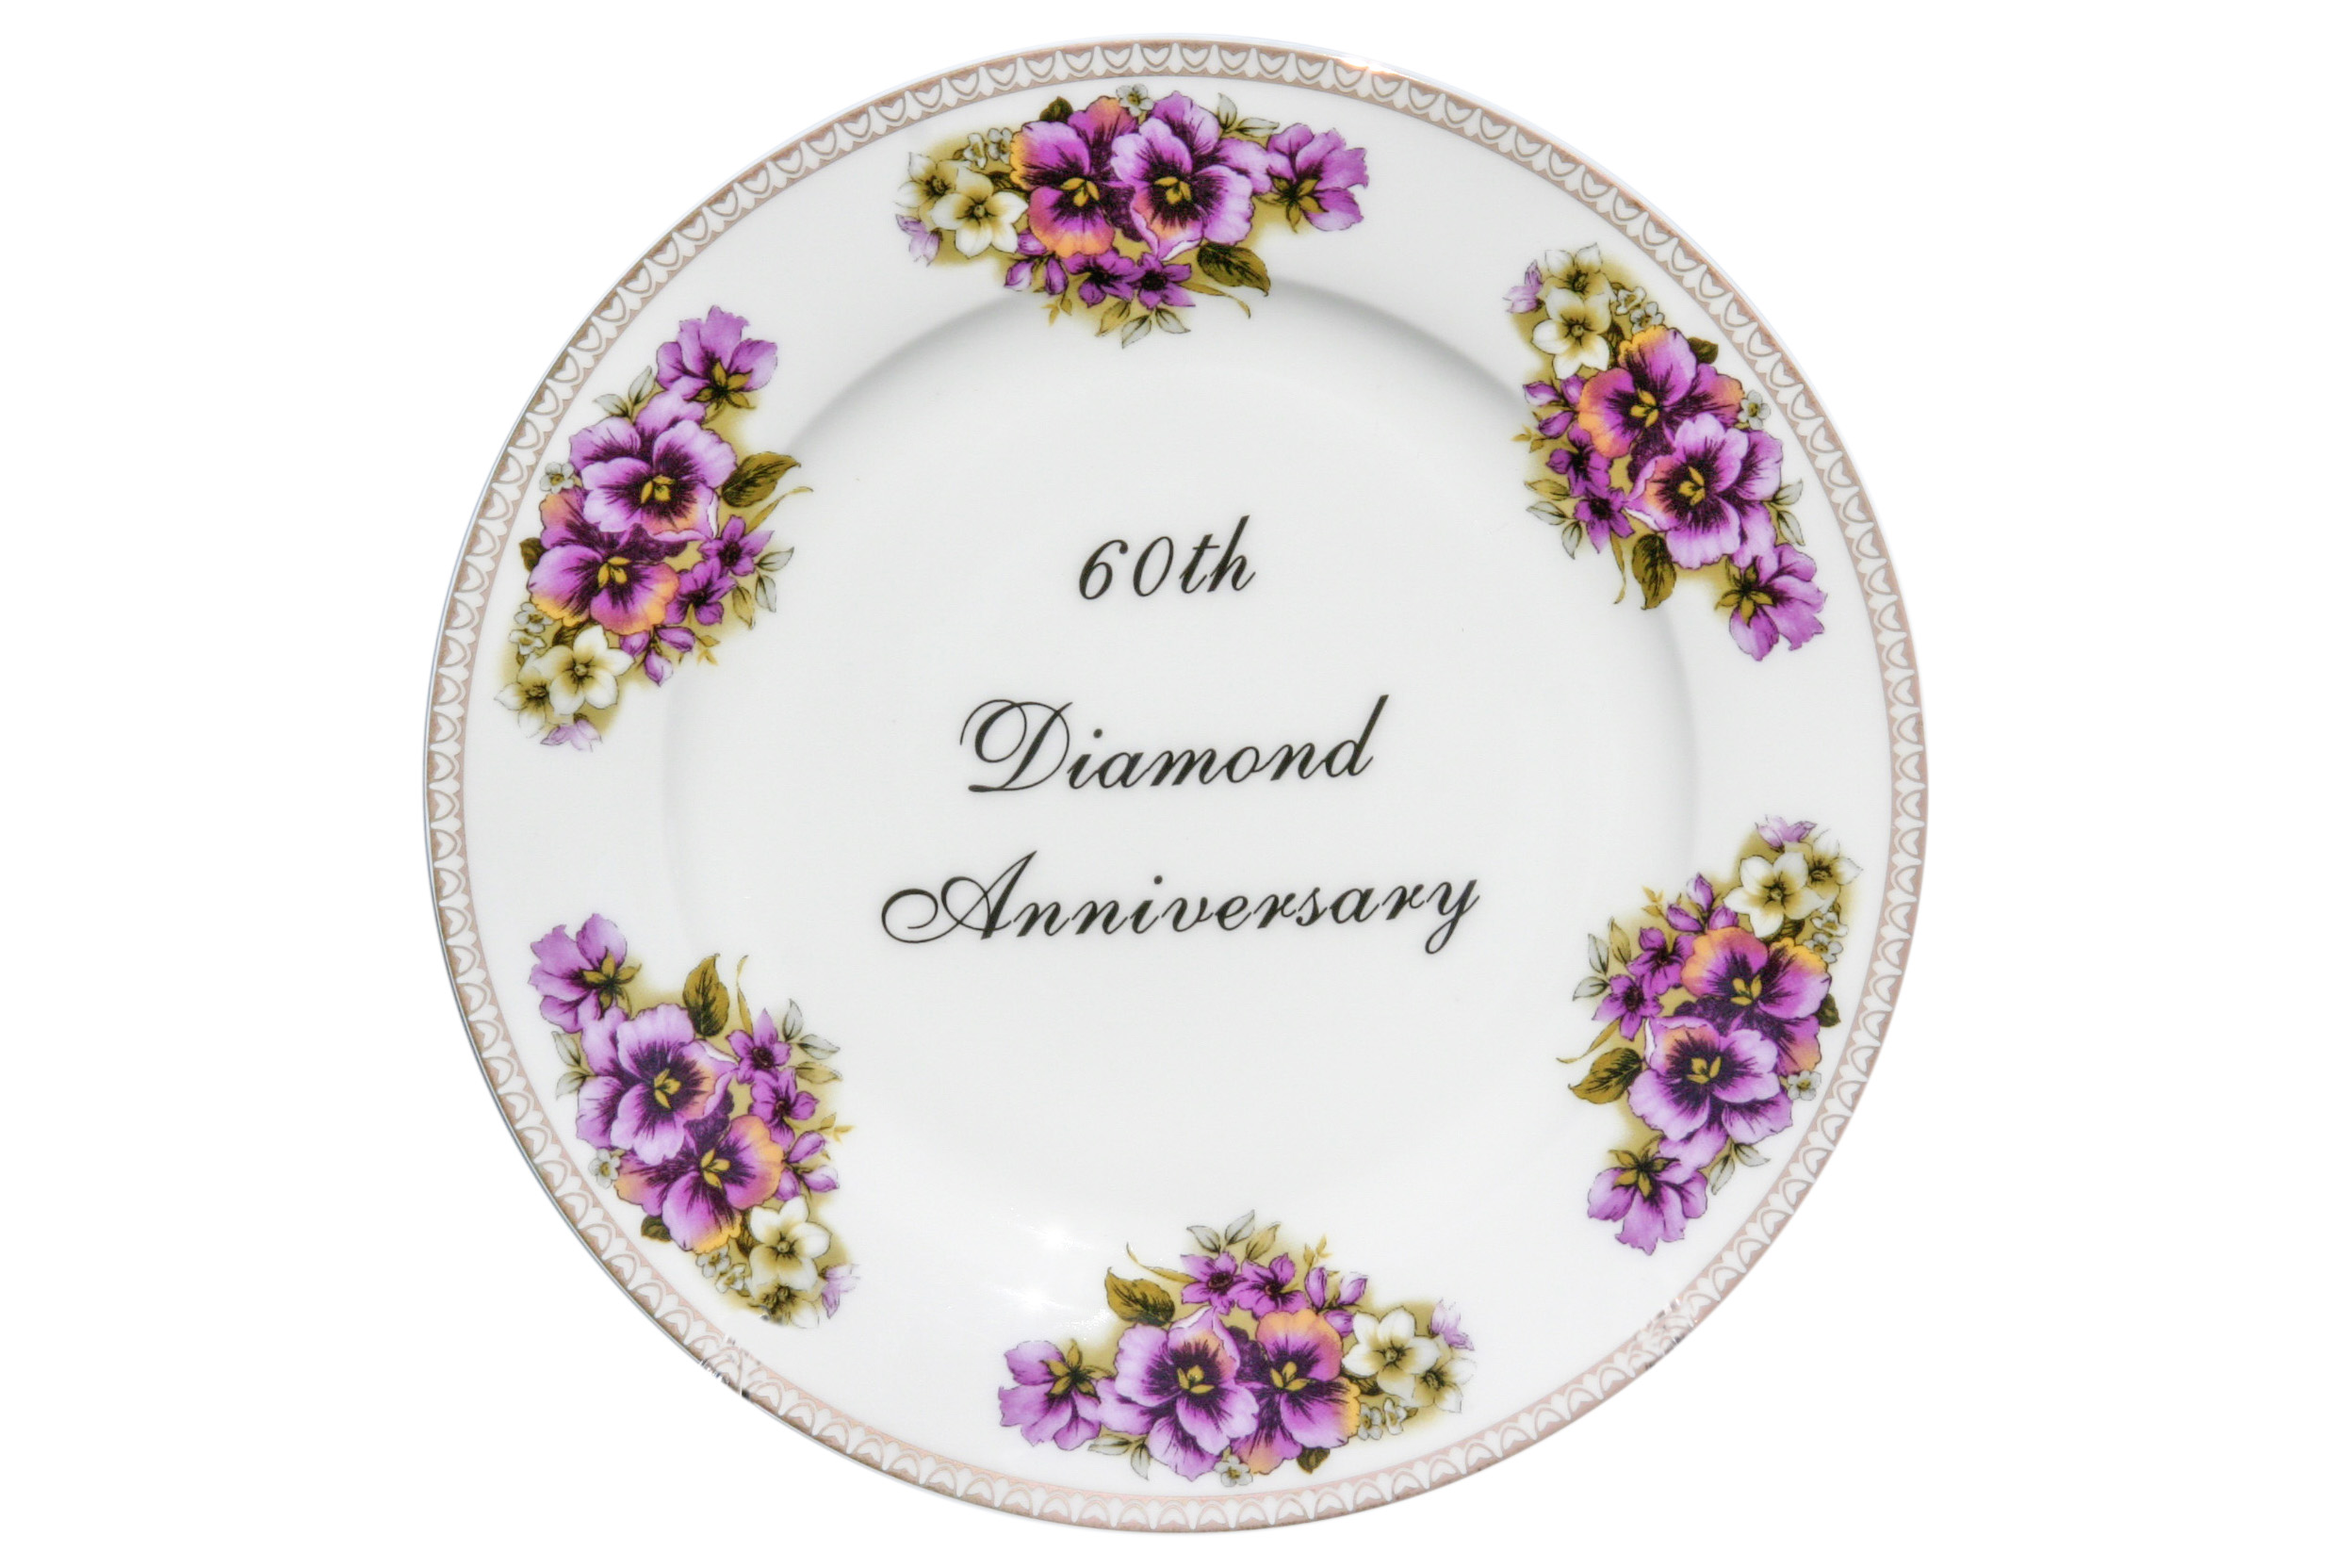 8' 60th Diamond Anniversary Plate